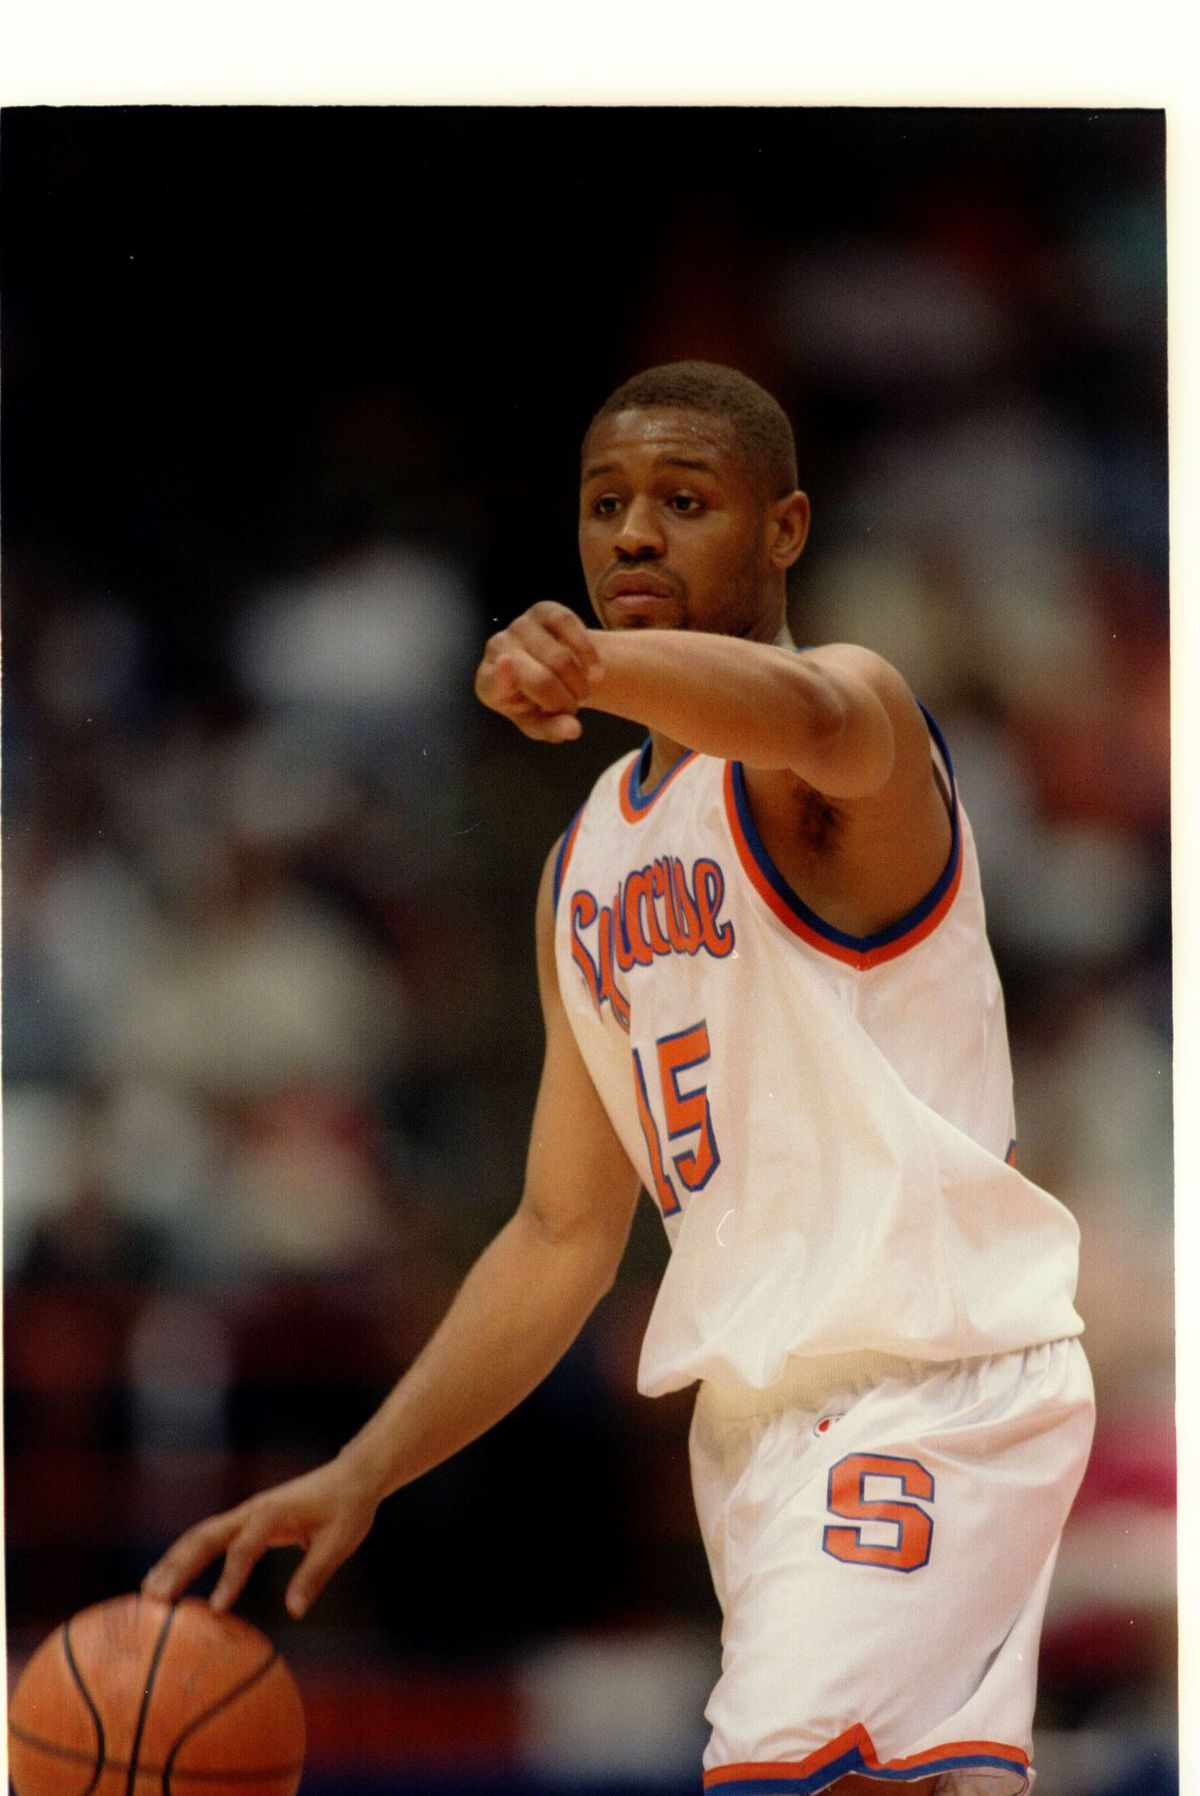 23 Feb 1994: SYRACUSE ORANGEMEN GUARD ADRIAN AUTRY SETS UP THE OFFENSE DURING A BIG EAST CONFERENCE